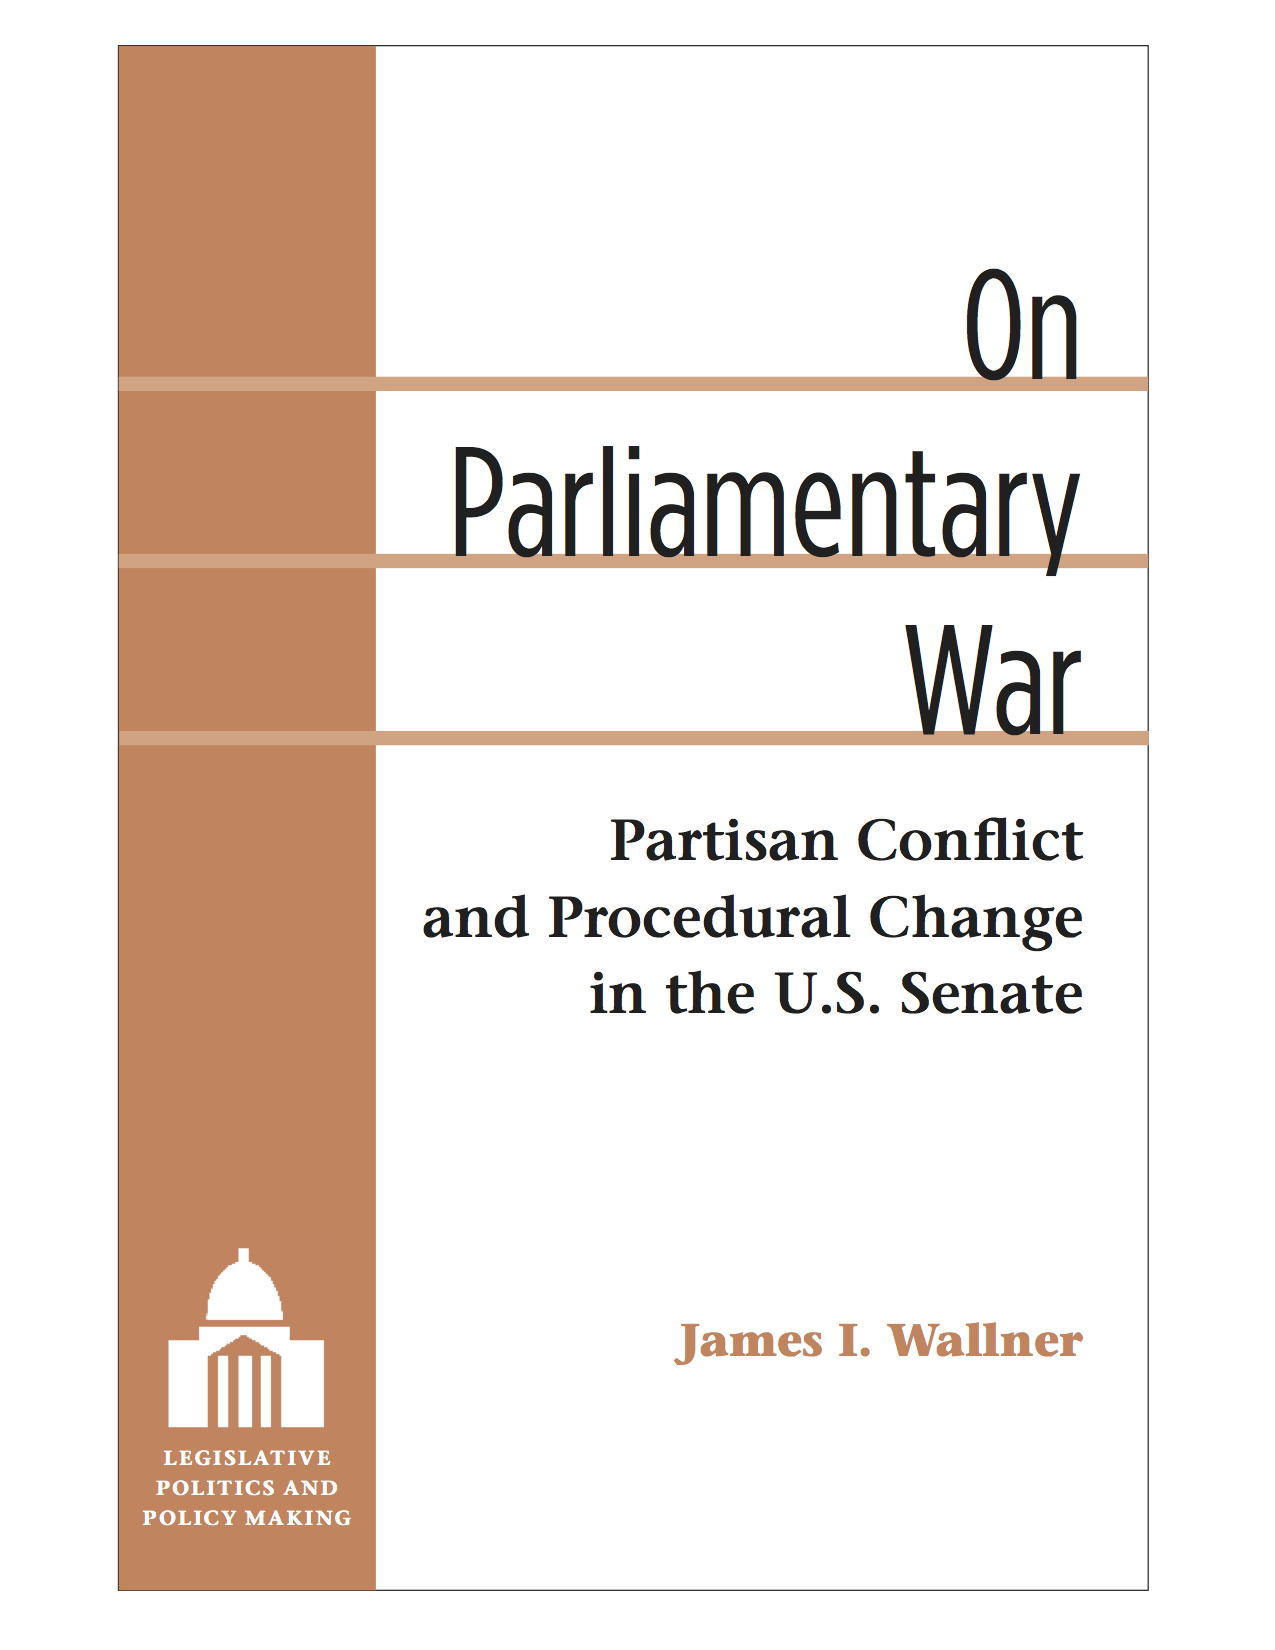 On Parliamentary War Cover.jpg